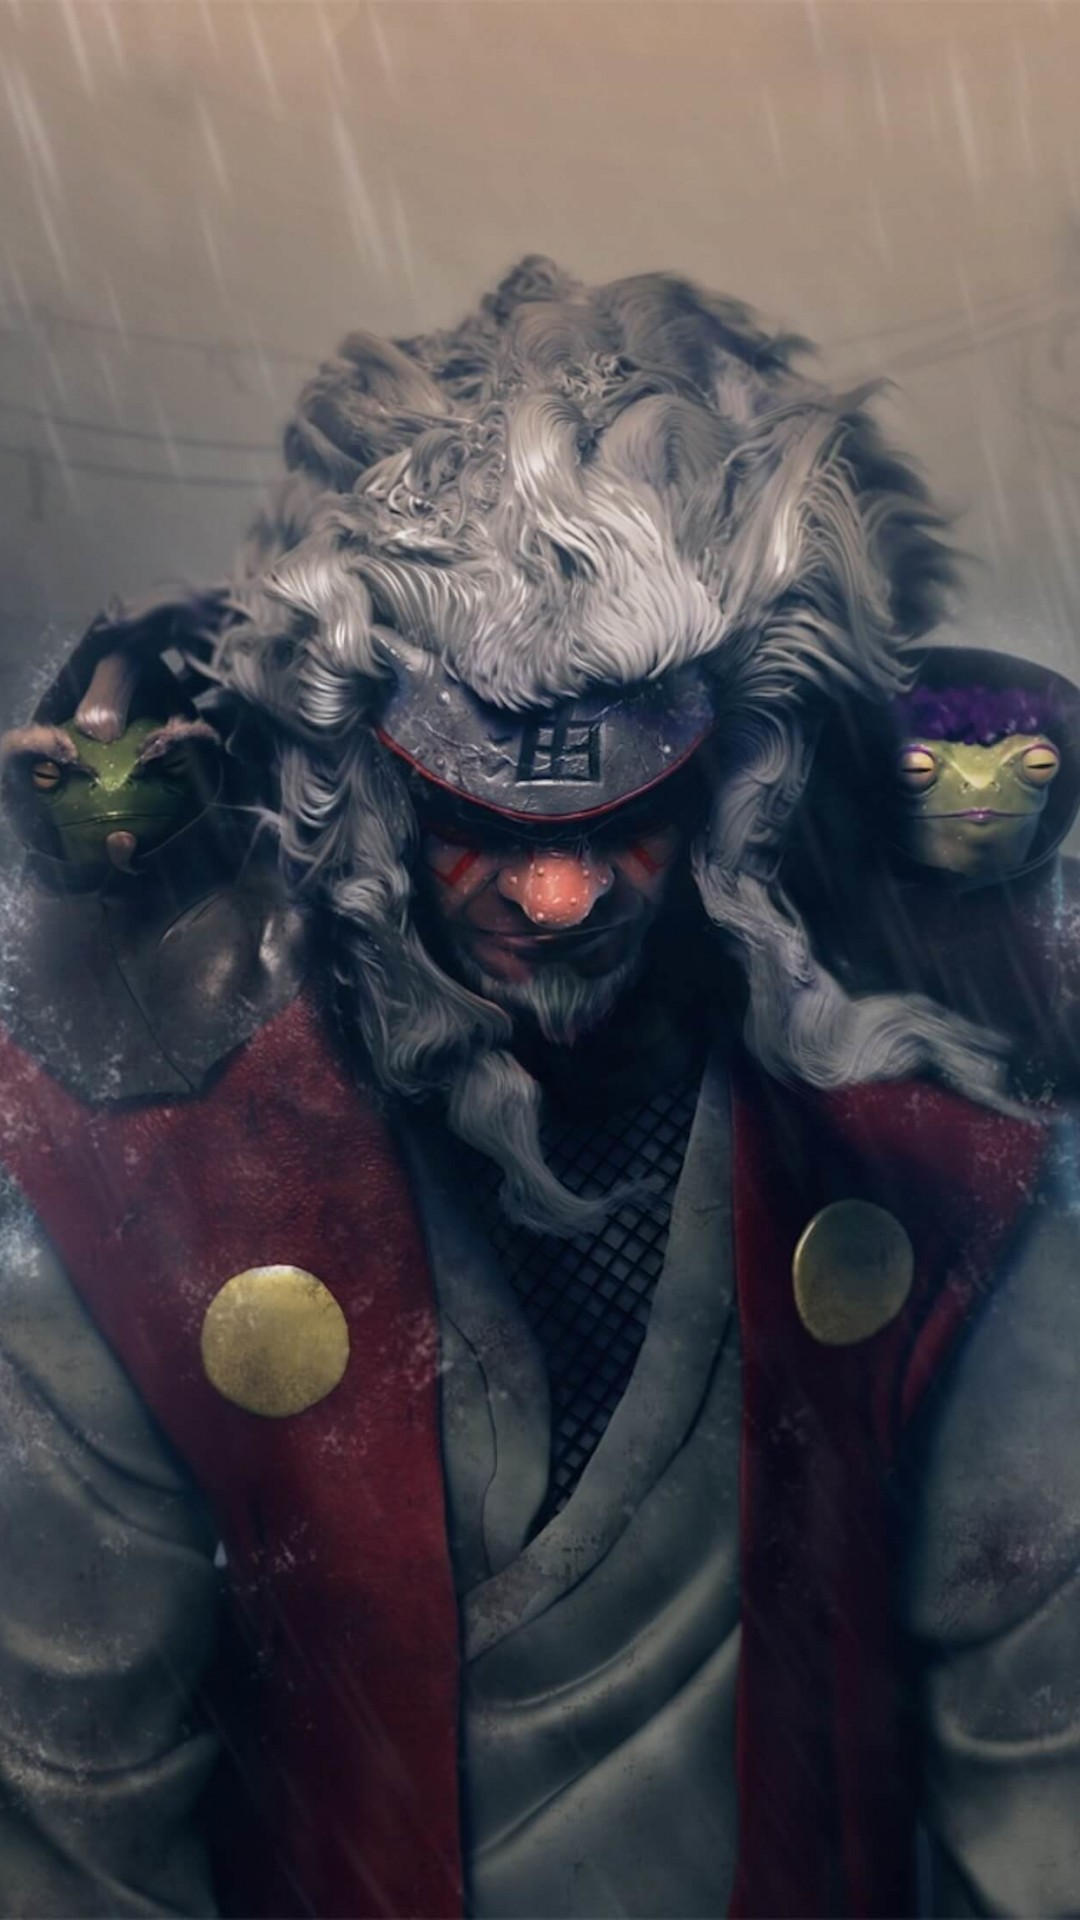 Jiraiya Fan Art - Naruto Wallpaper for SONY Xperia Z1